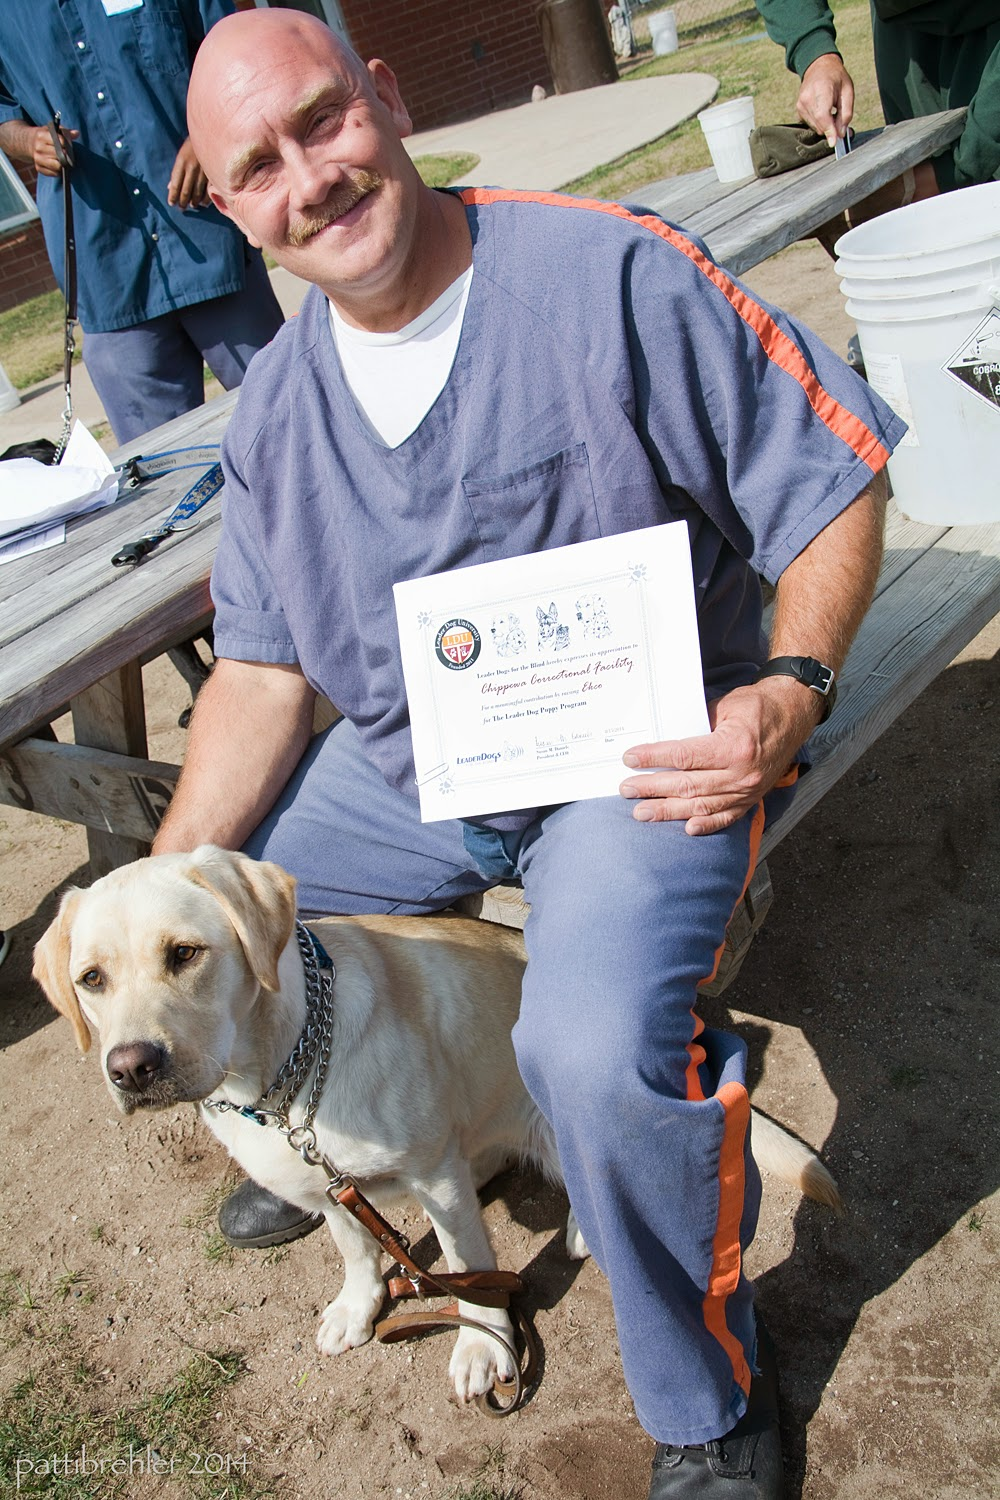 A bald man wearing the blue prison uniform is sitting in the bright sun on the seat of a picnic table. Between his legs sits a young yellow lab, whose leash is hanging on the ground. The man is smiling at the camera, his right hand is touching the dog's neck from behind, and his left hand is holding a certificate on his left thigh.